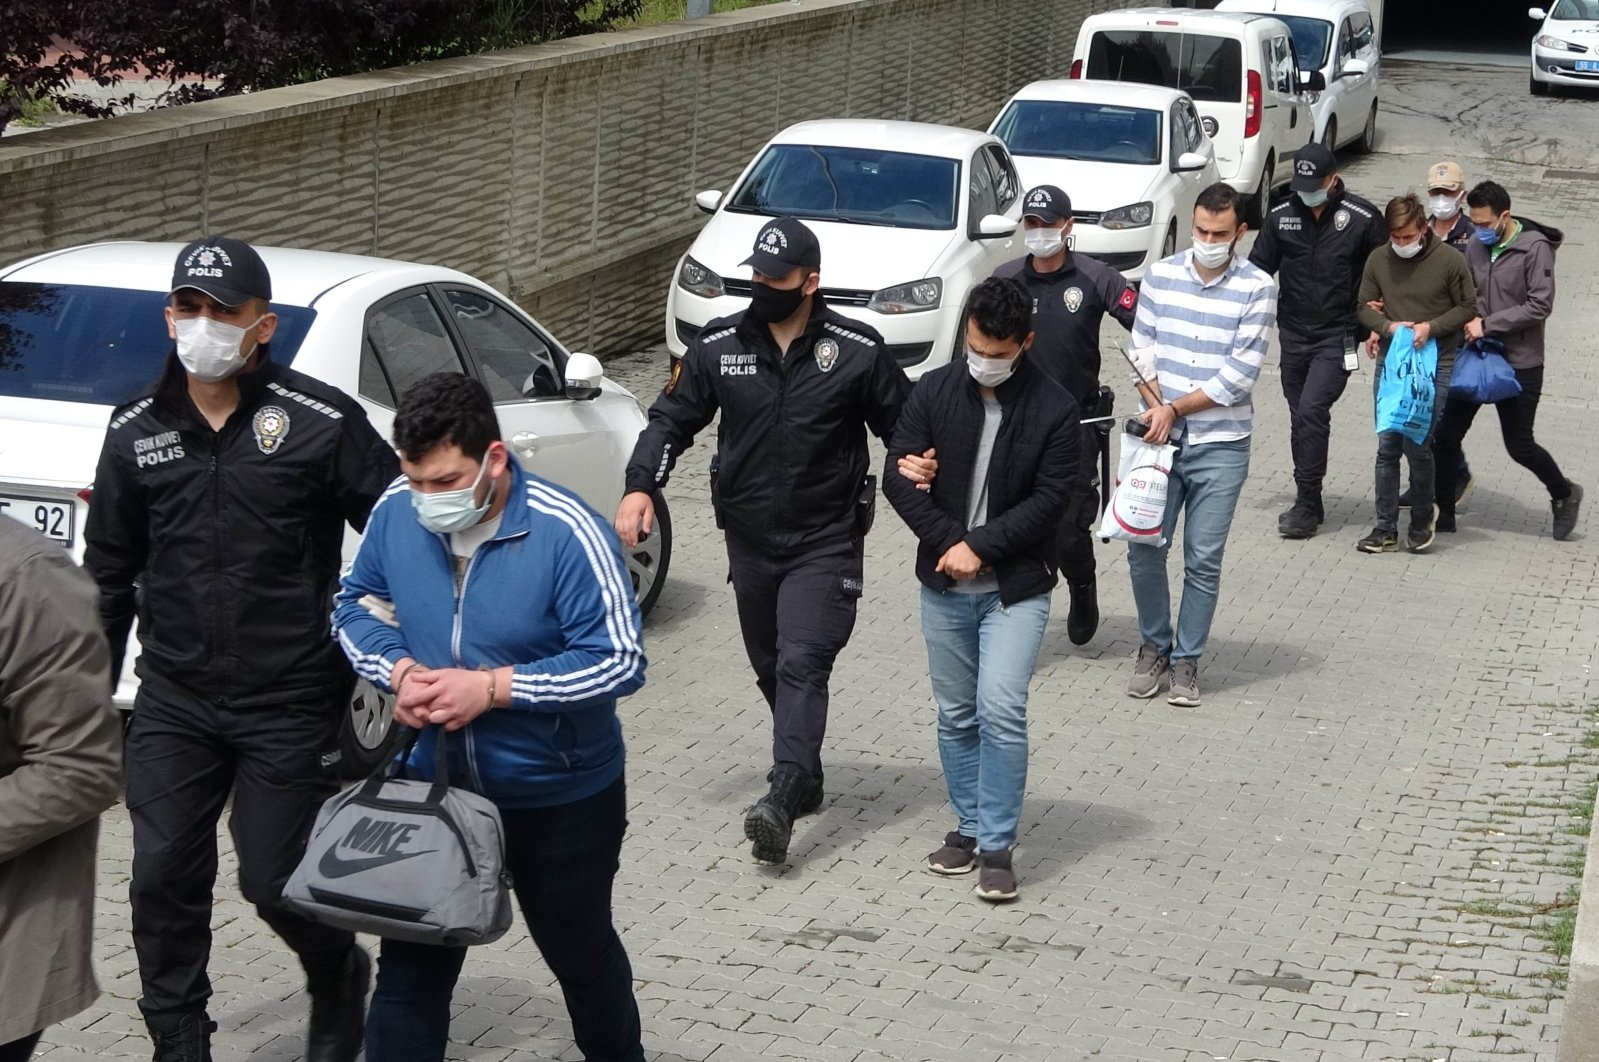 Police officers escort FETÖ suspects to the courthouse, in Samsun, northern Turkey, May 24, 2021. (İHA PHOTO)